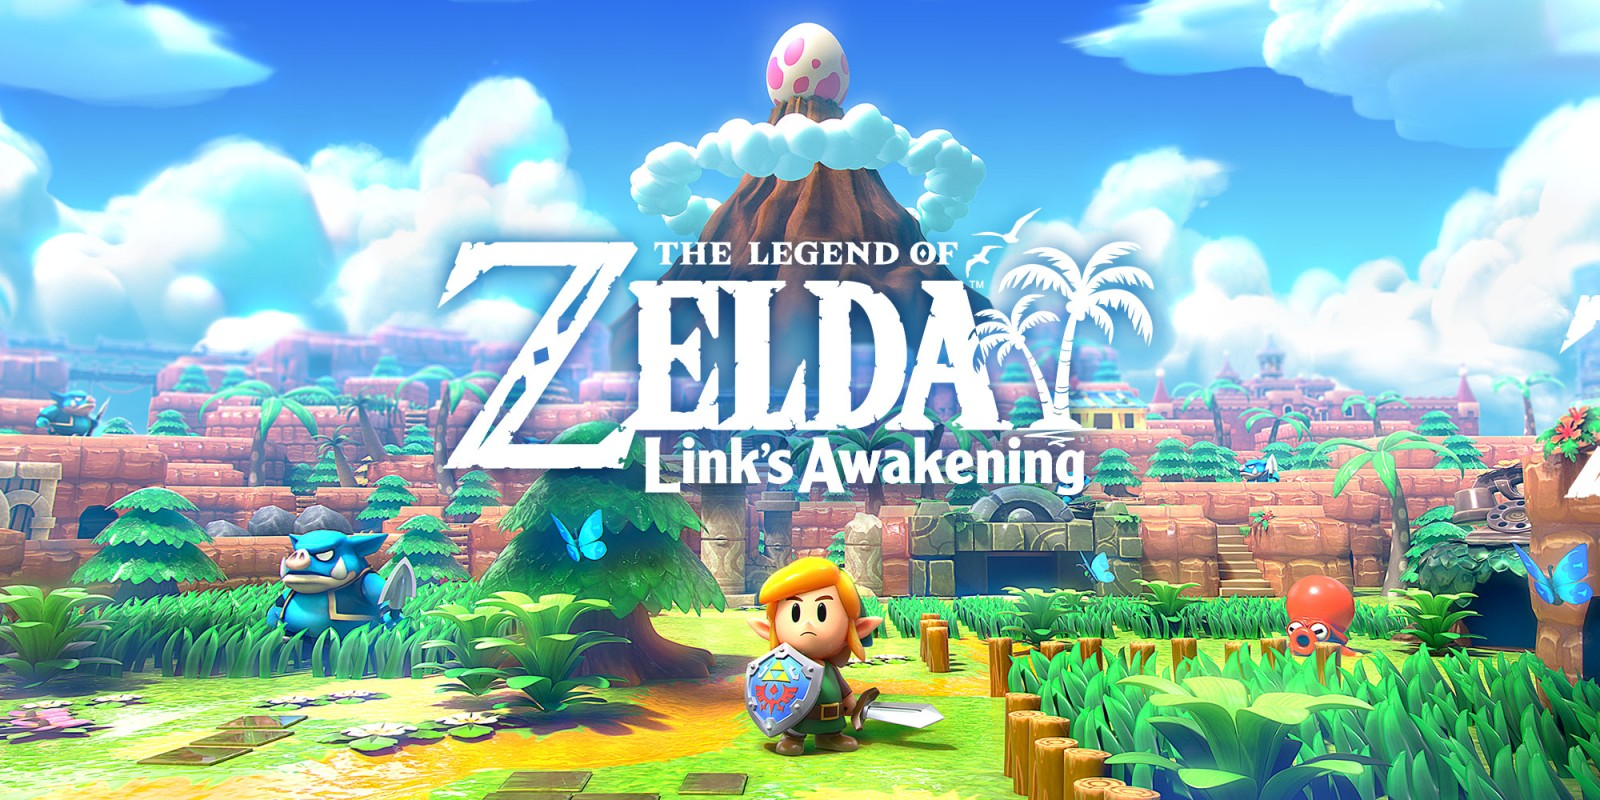 The Legend of Zelda: Link's Awakening에 대한 이미지 검색결과